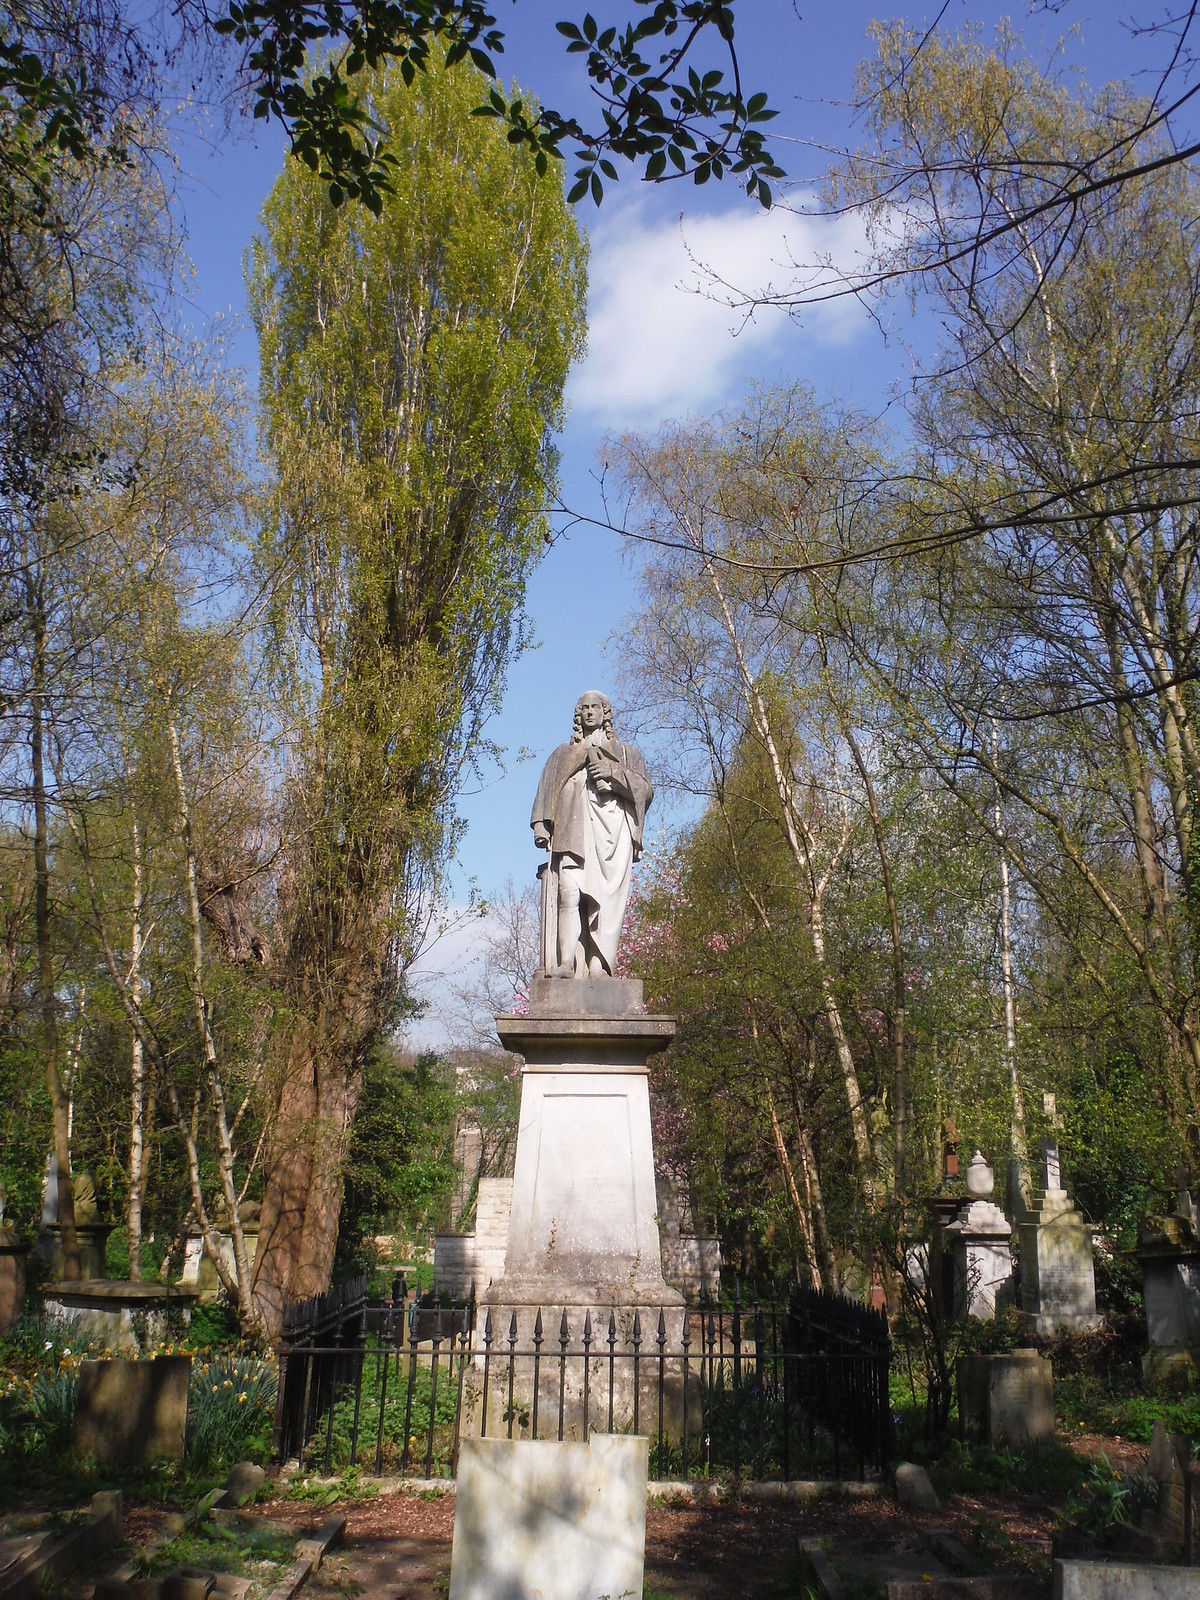 Dr Isaac Watts Monument, Abney Park Cemetery SWC Short Walk 26 - Woodberry Wetlands (Stoke Newington Reservoirs)